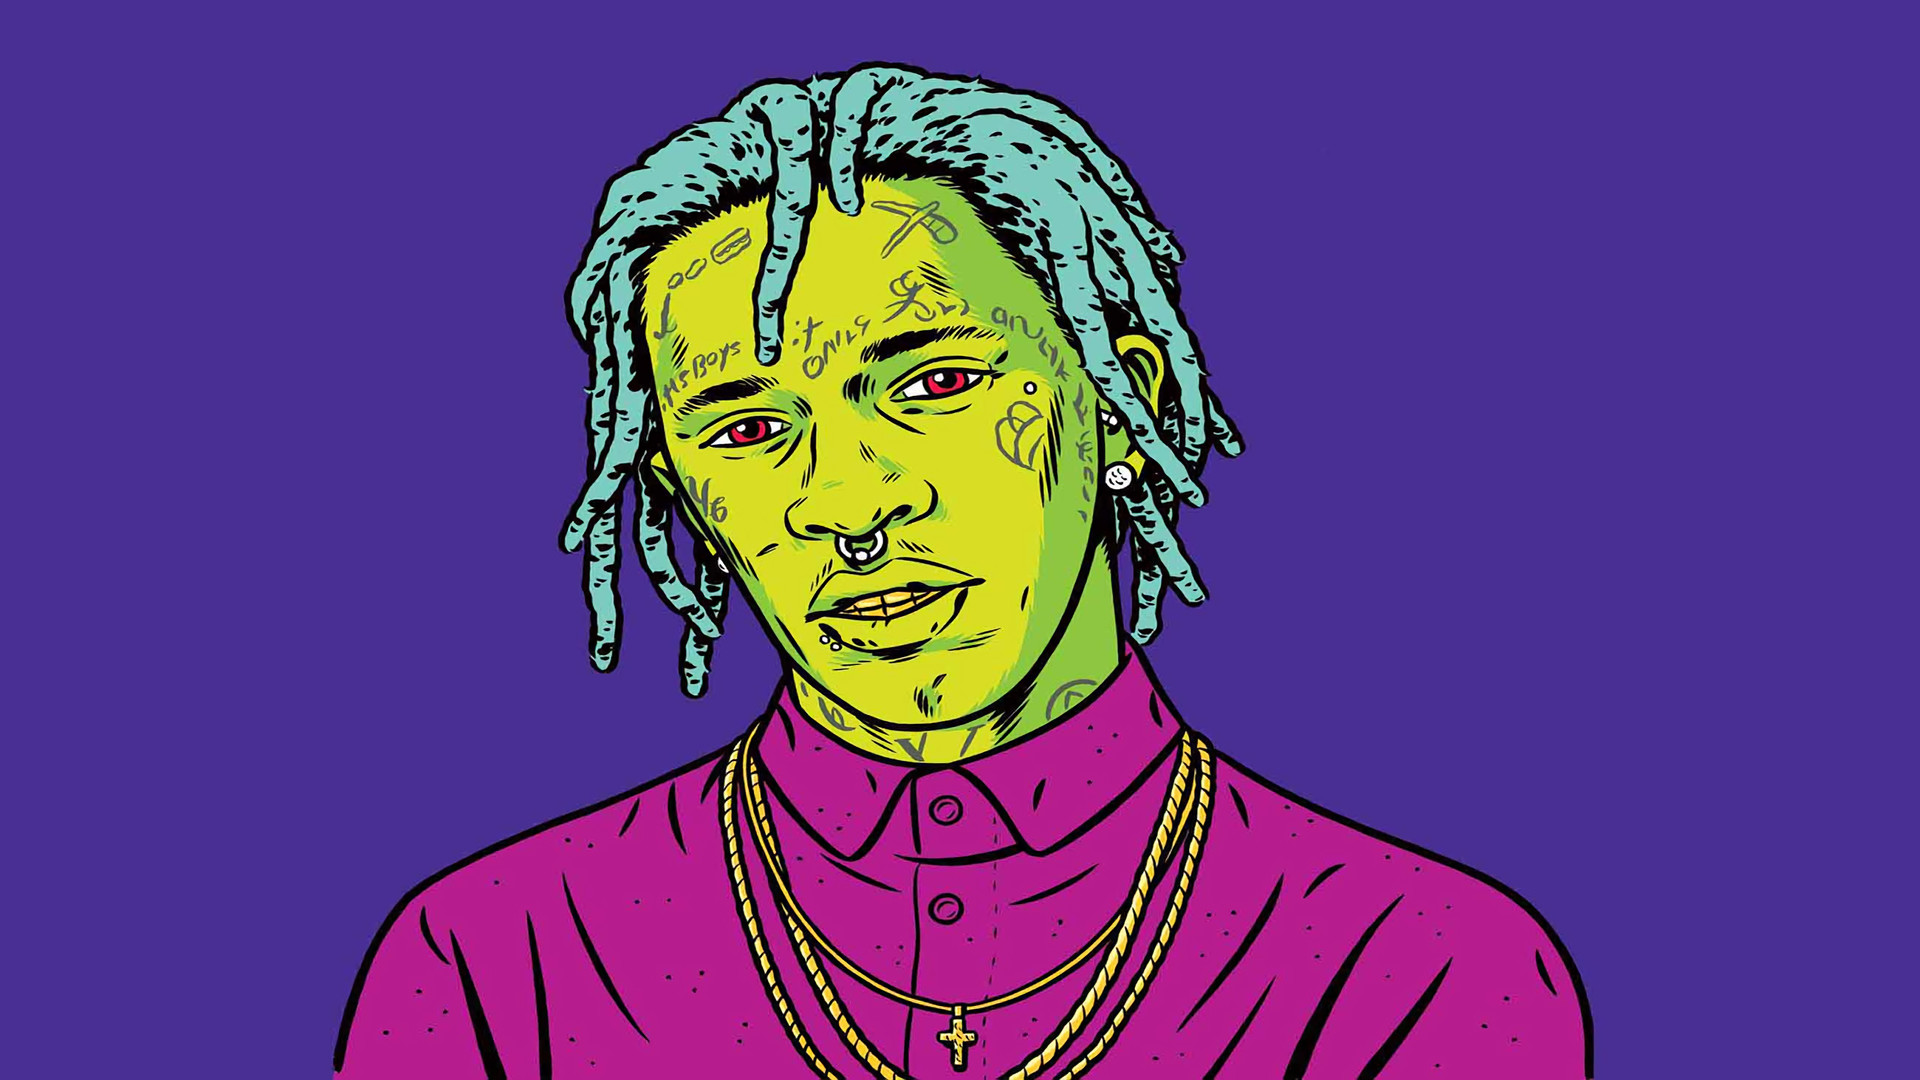 Young Thug Wallpapers 76 Images